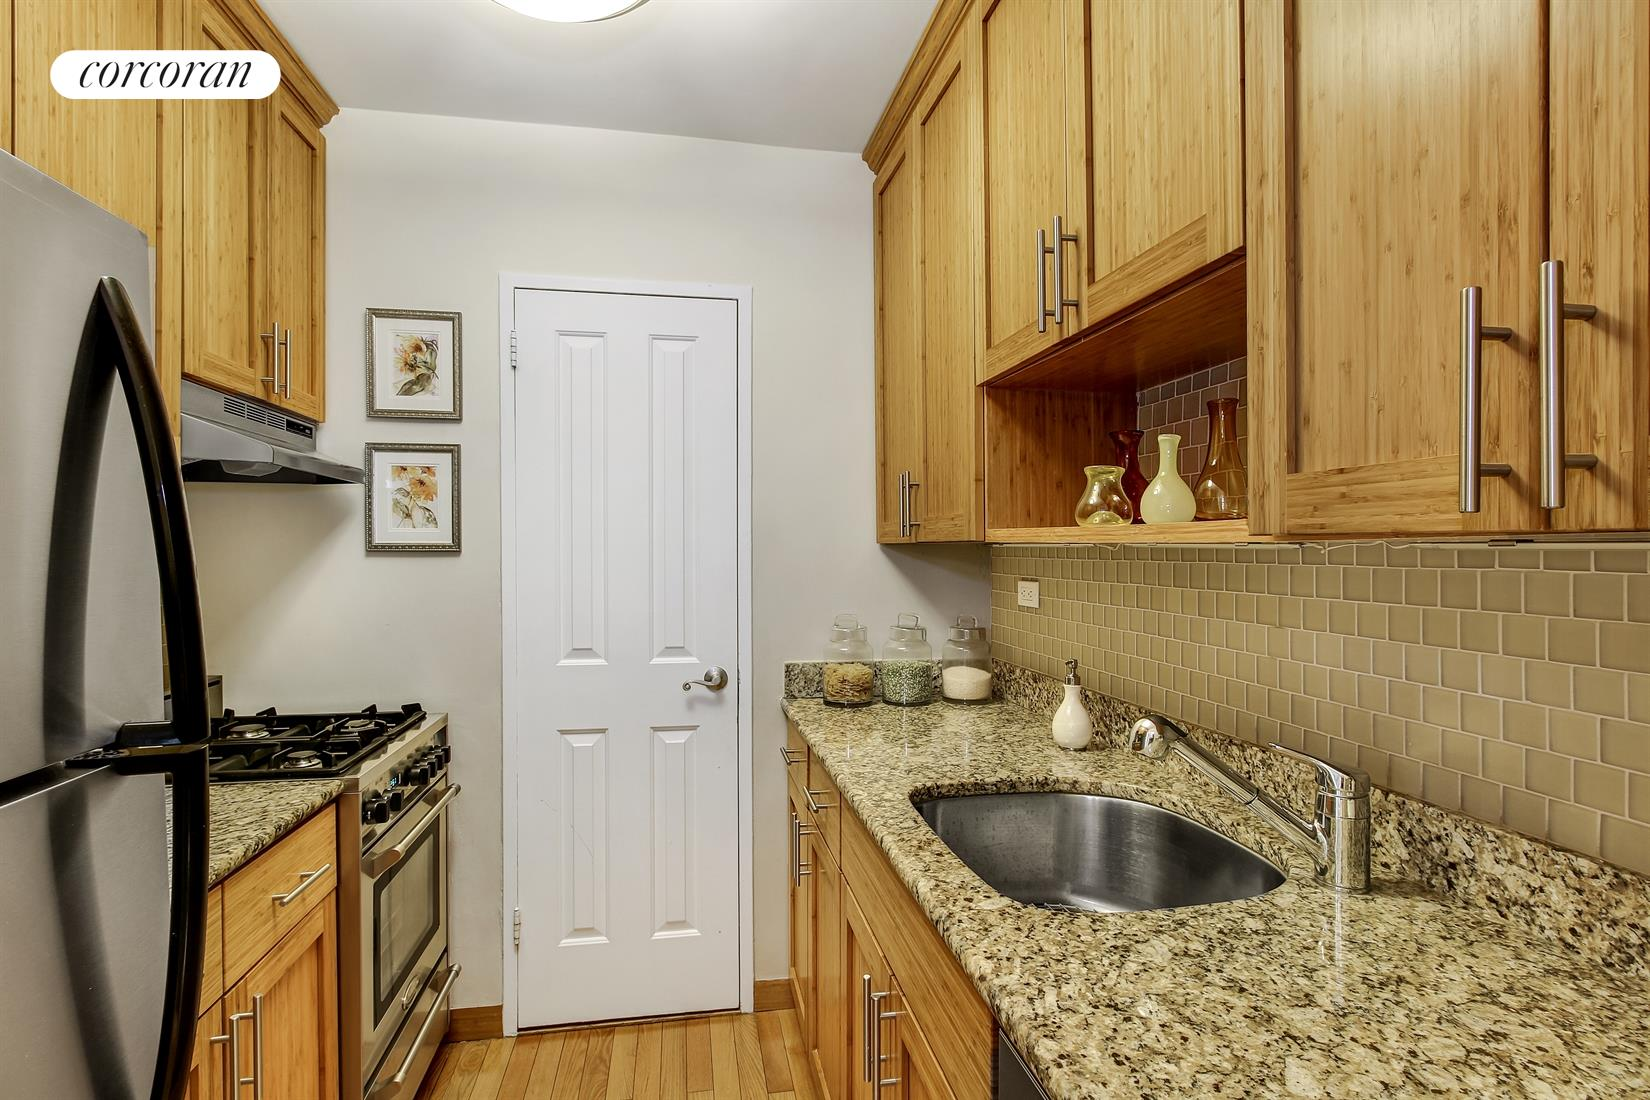 Corcoran, 10 East End Avenue, Apt. 12A, Upper East Side Real ...